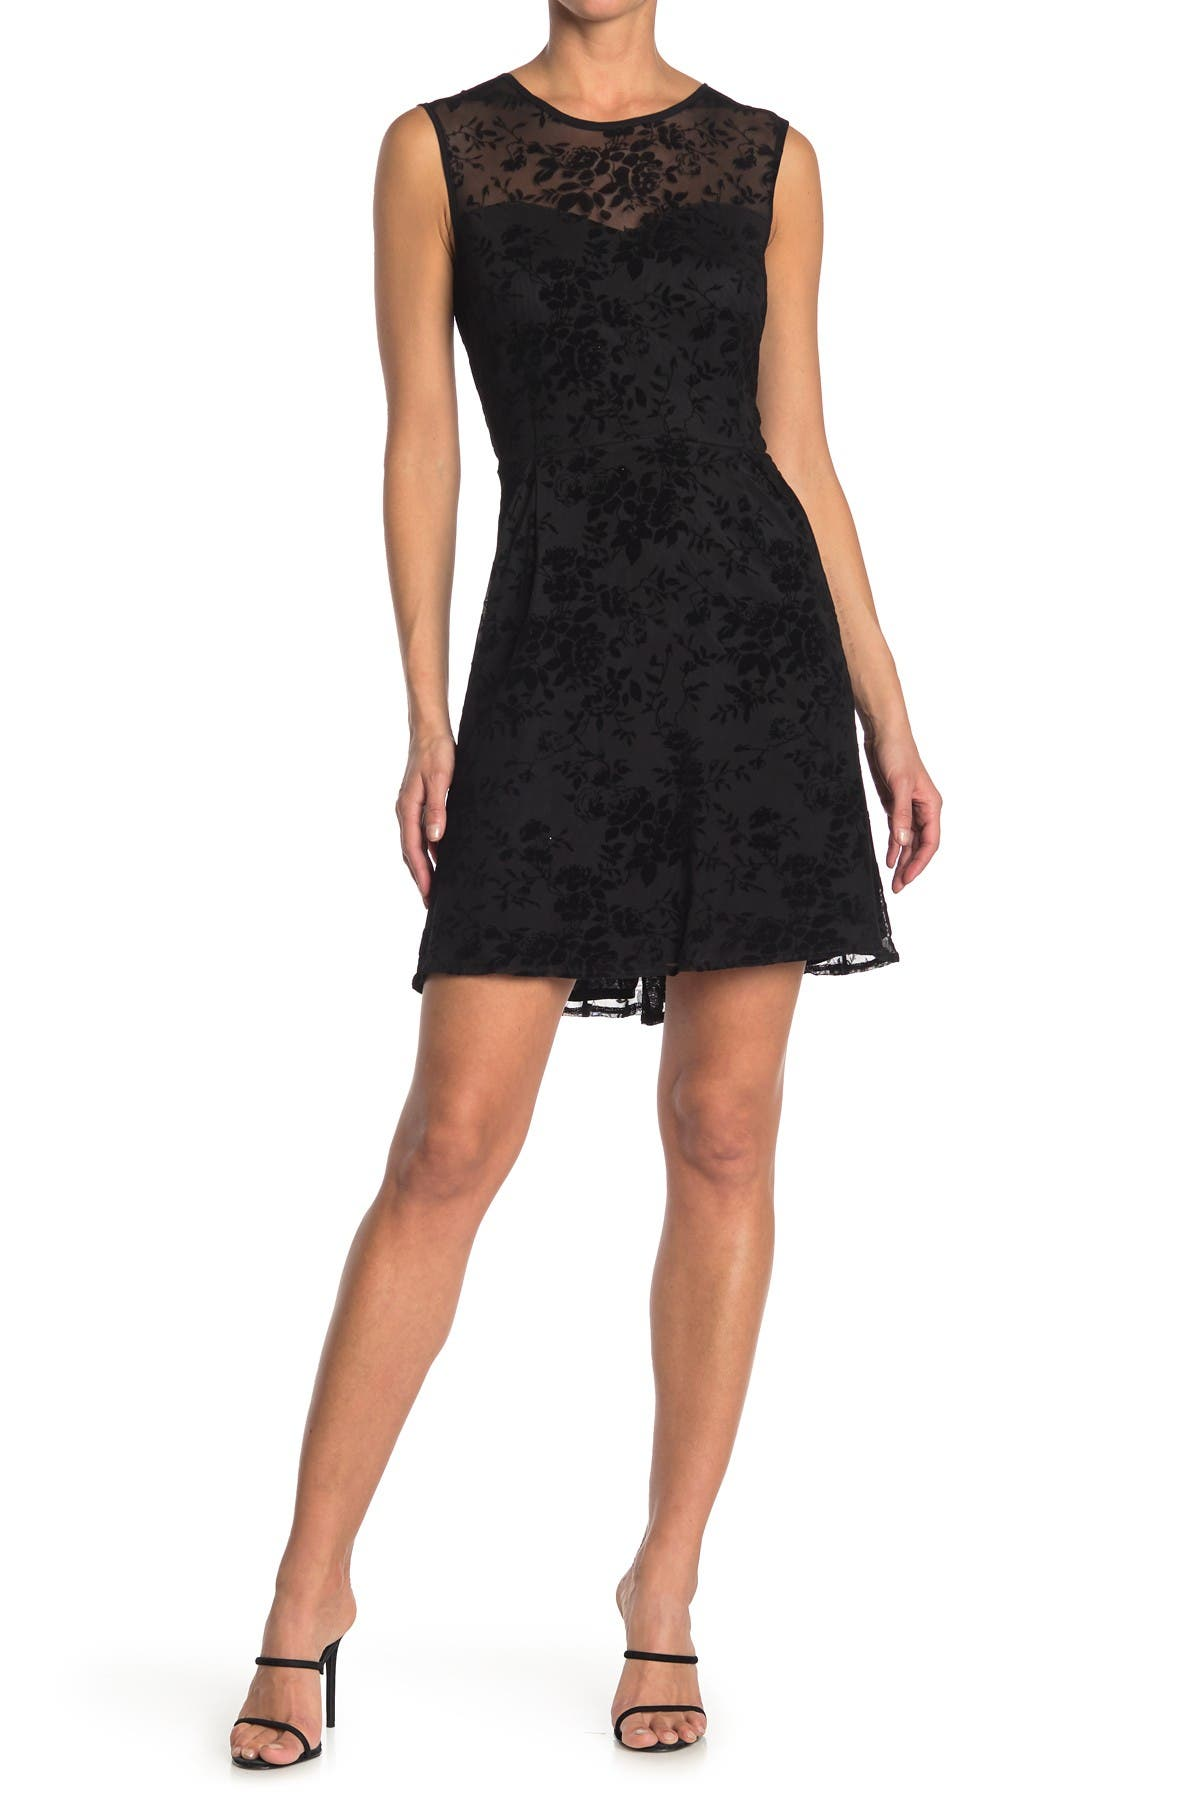 Image of Papillon Flocked Rose Fit & Flare Cocktail Dress